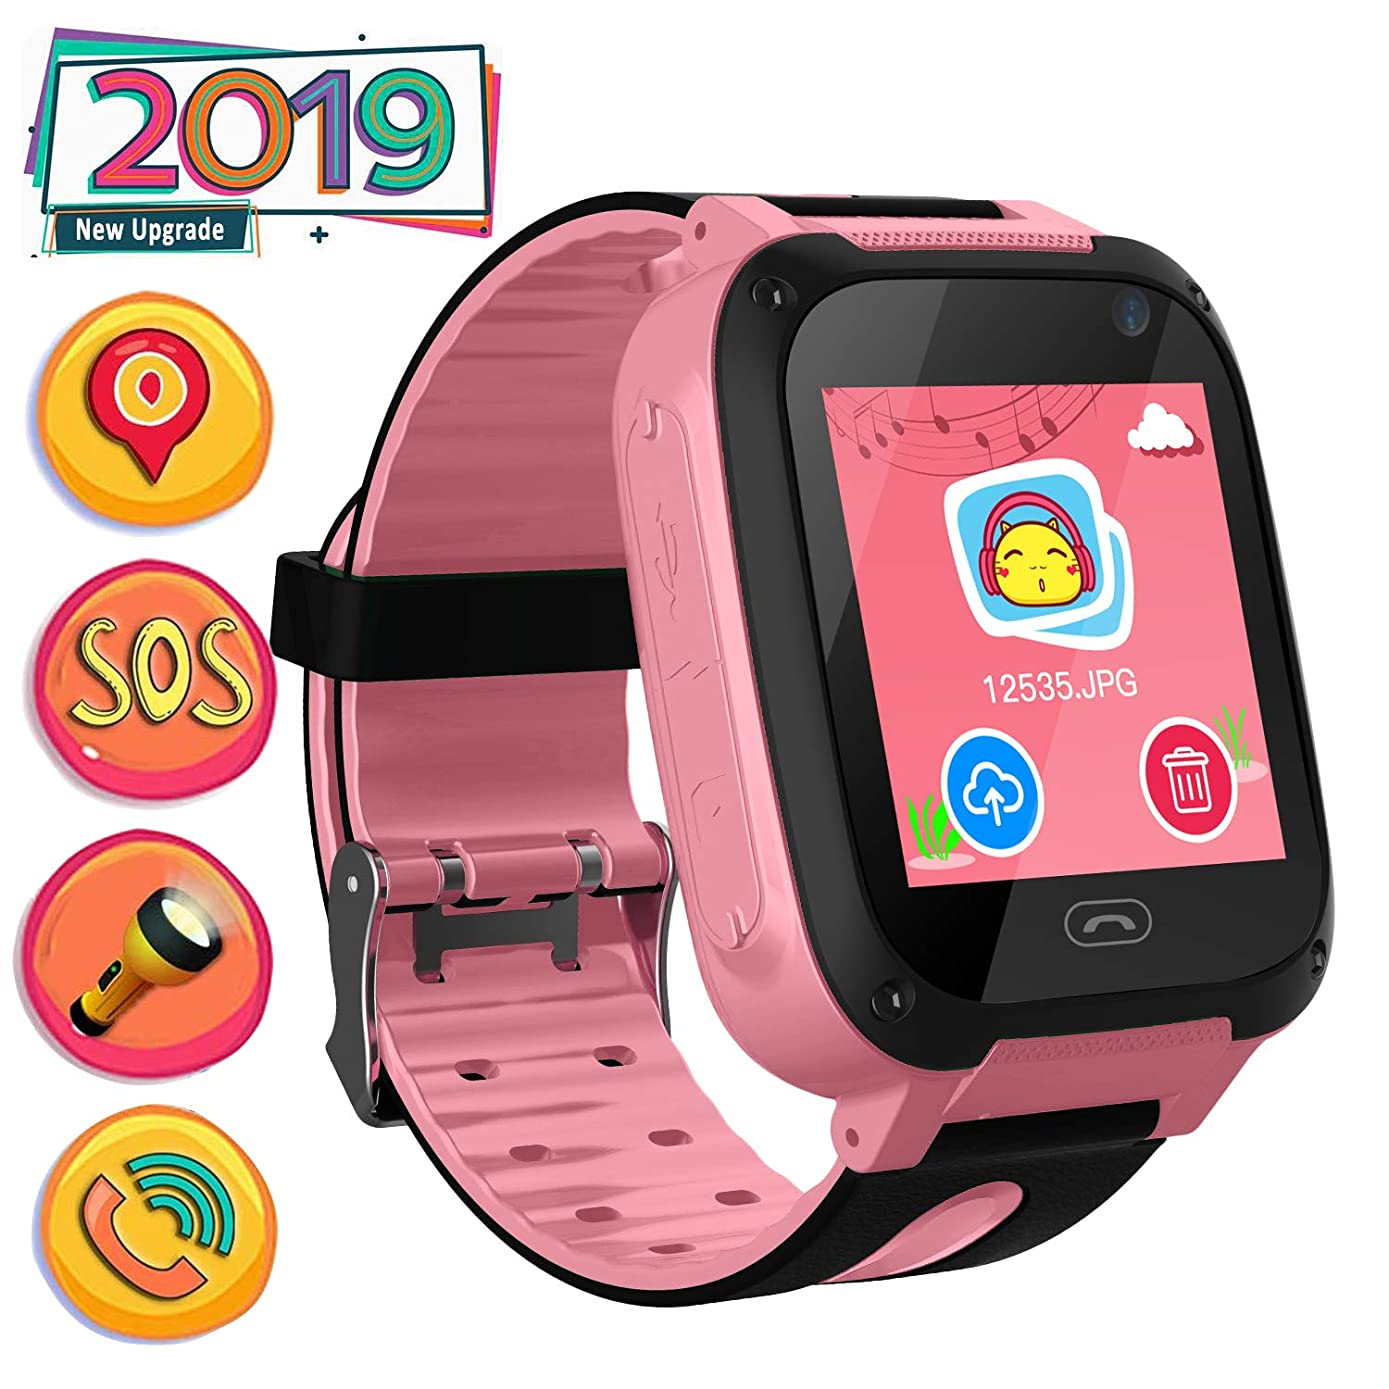 Kids Smart Watch Phone smartwatches for Children with LBS Tracker sim Card Anti-Lost sos Call Boys and Girls Birthday Compatible Android iOS Touch Screen Voice Chat Remote Camera